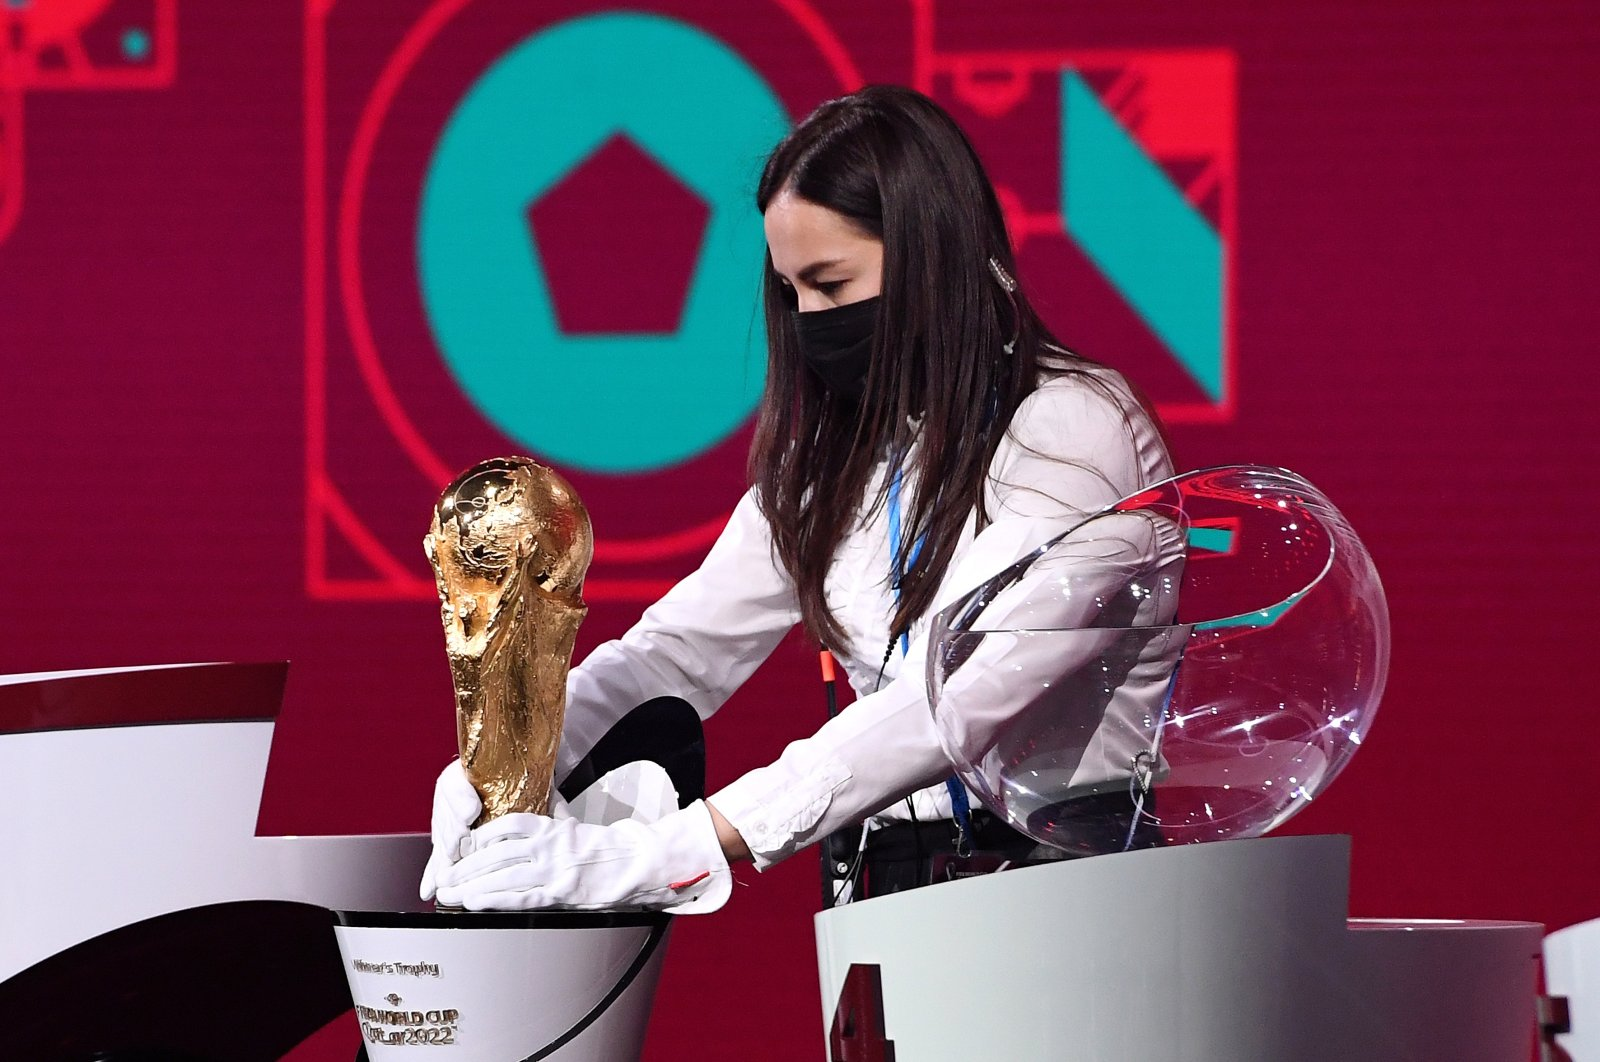 A member of staff cleans the World Cup Trophy prior to the Preliminary Draw of the 2022 Qatar FIFA World Cup, Zurich, Switzerland, Dec. 07, 2020. (Getty Images)